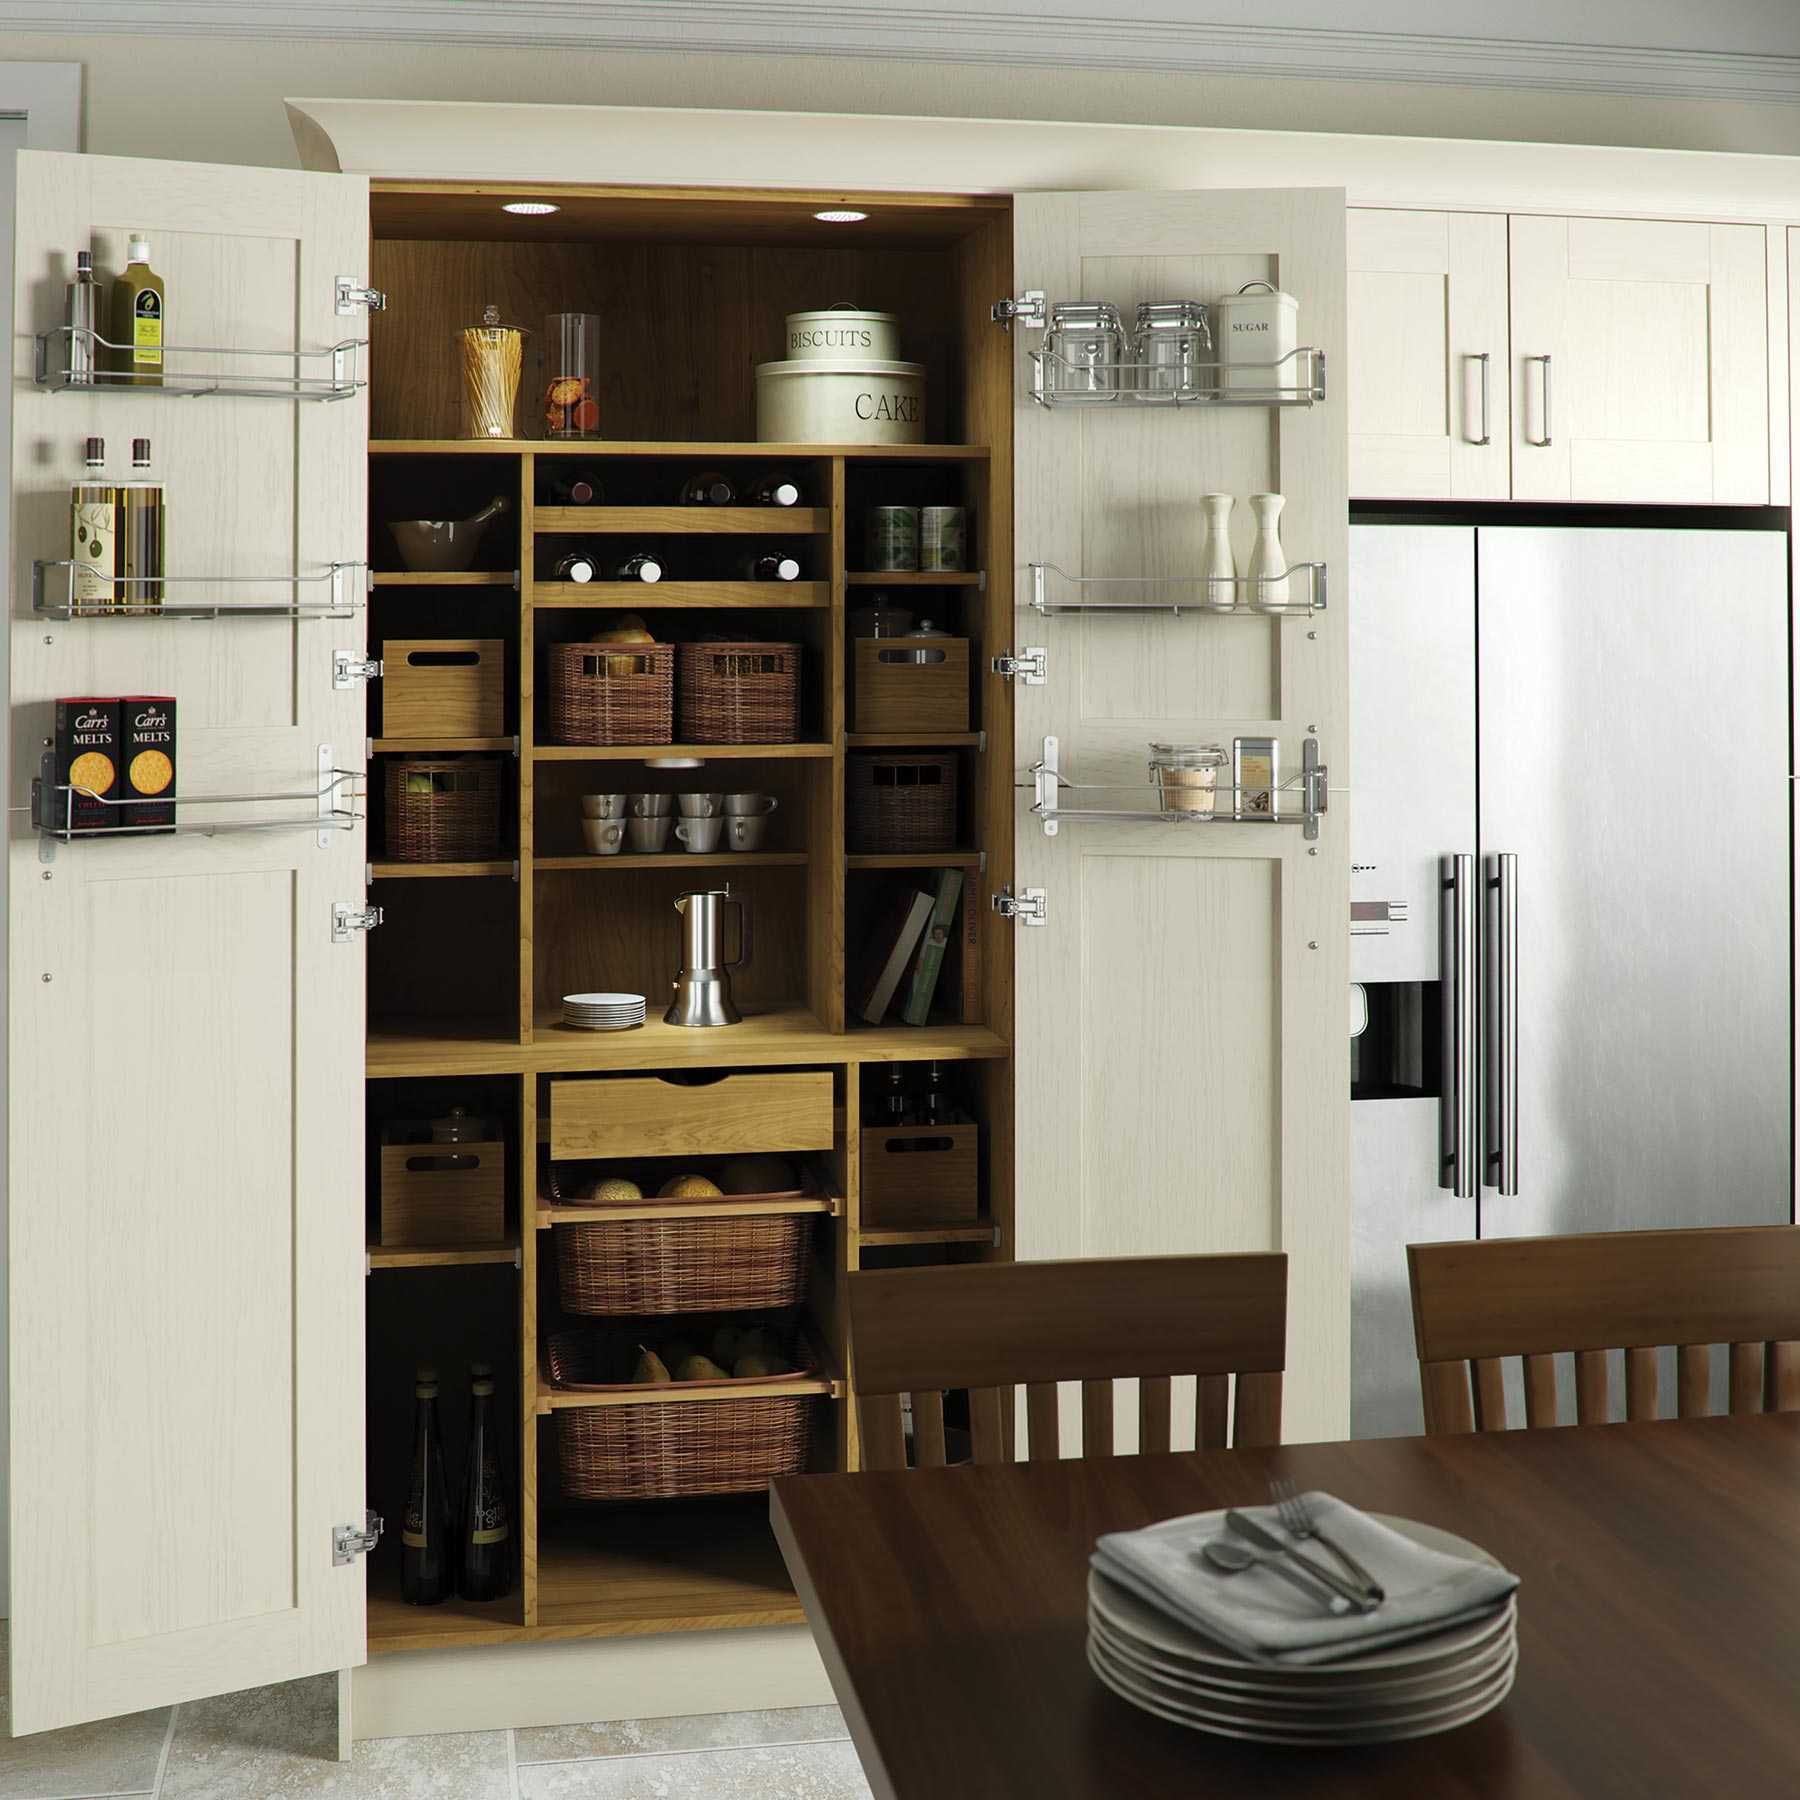 Clever Kitchen Ideas Make The Most Of Your Space Leekes Blog